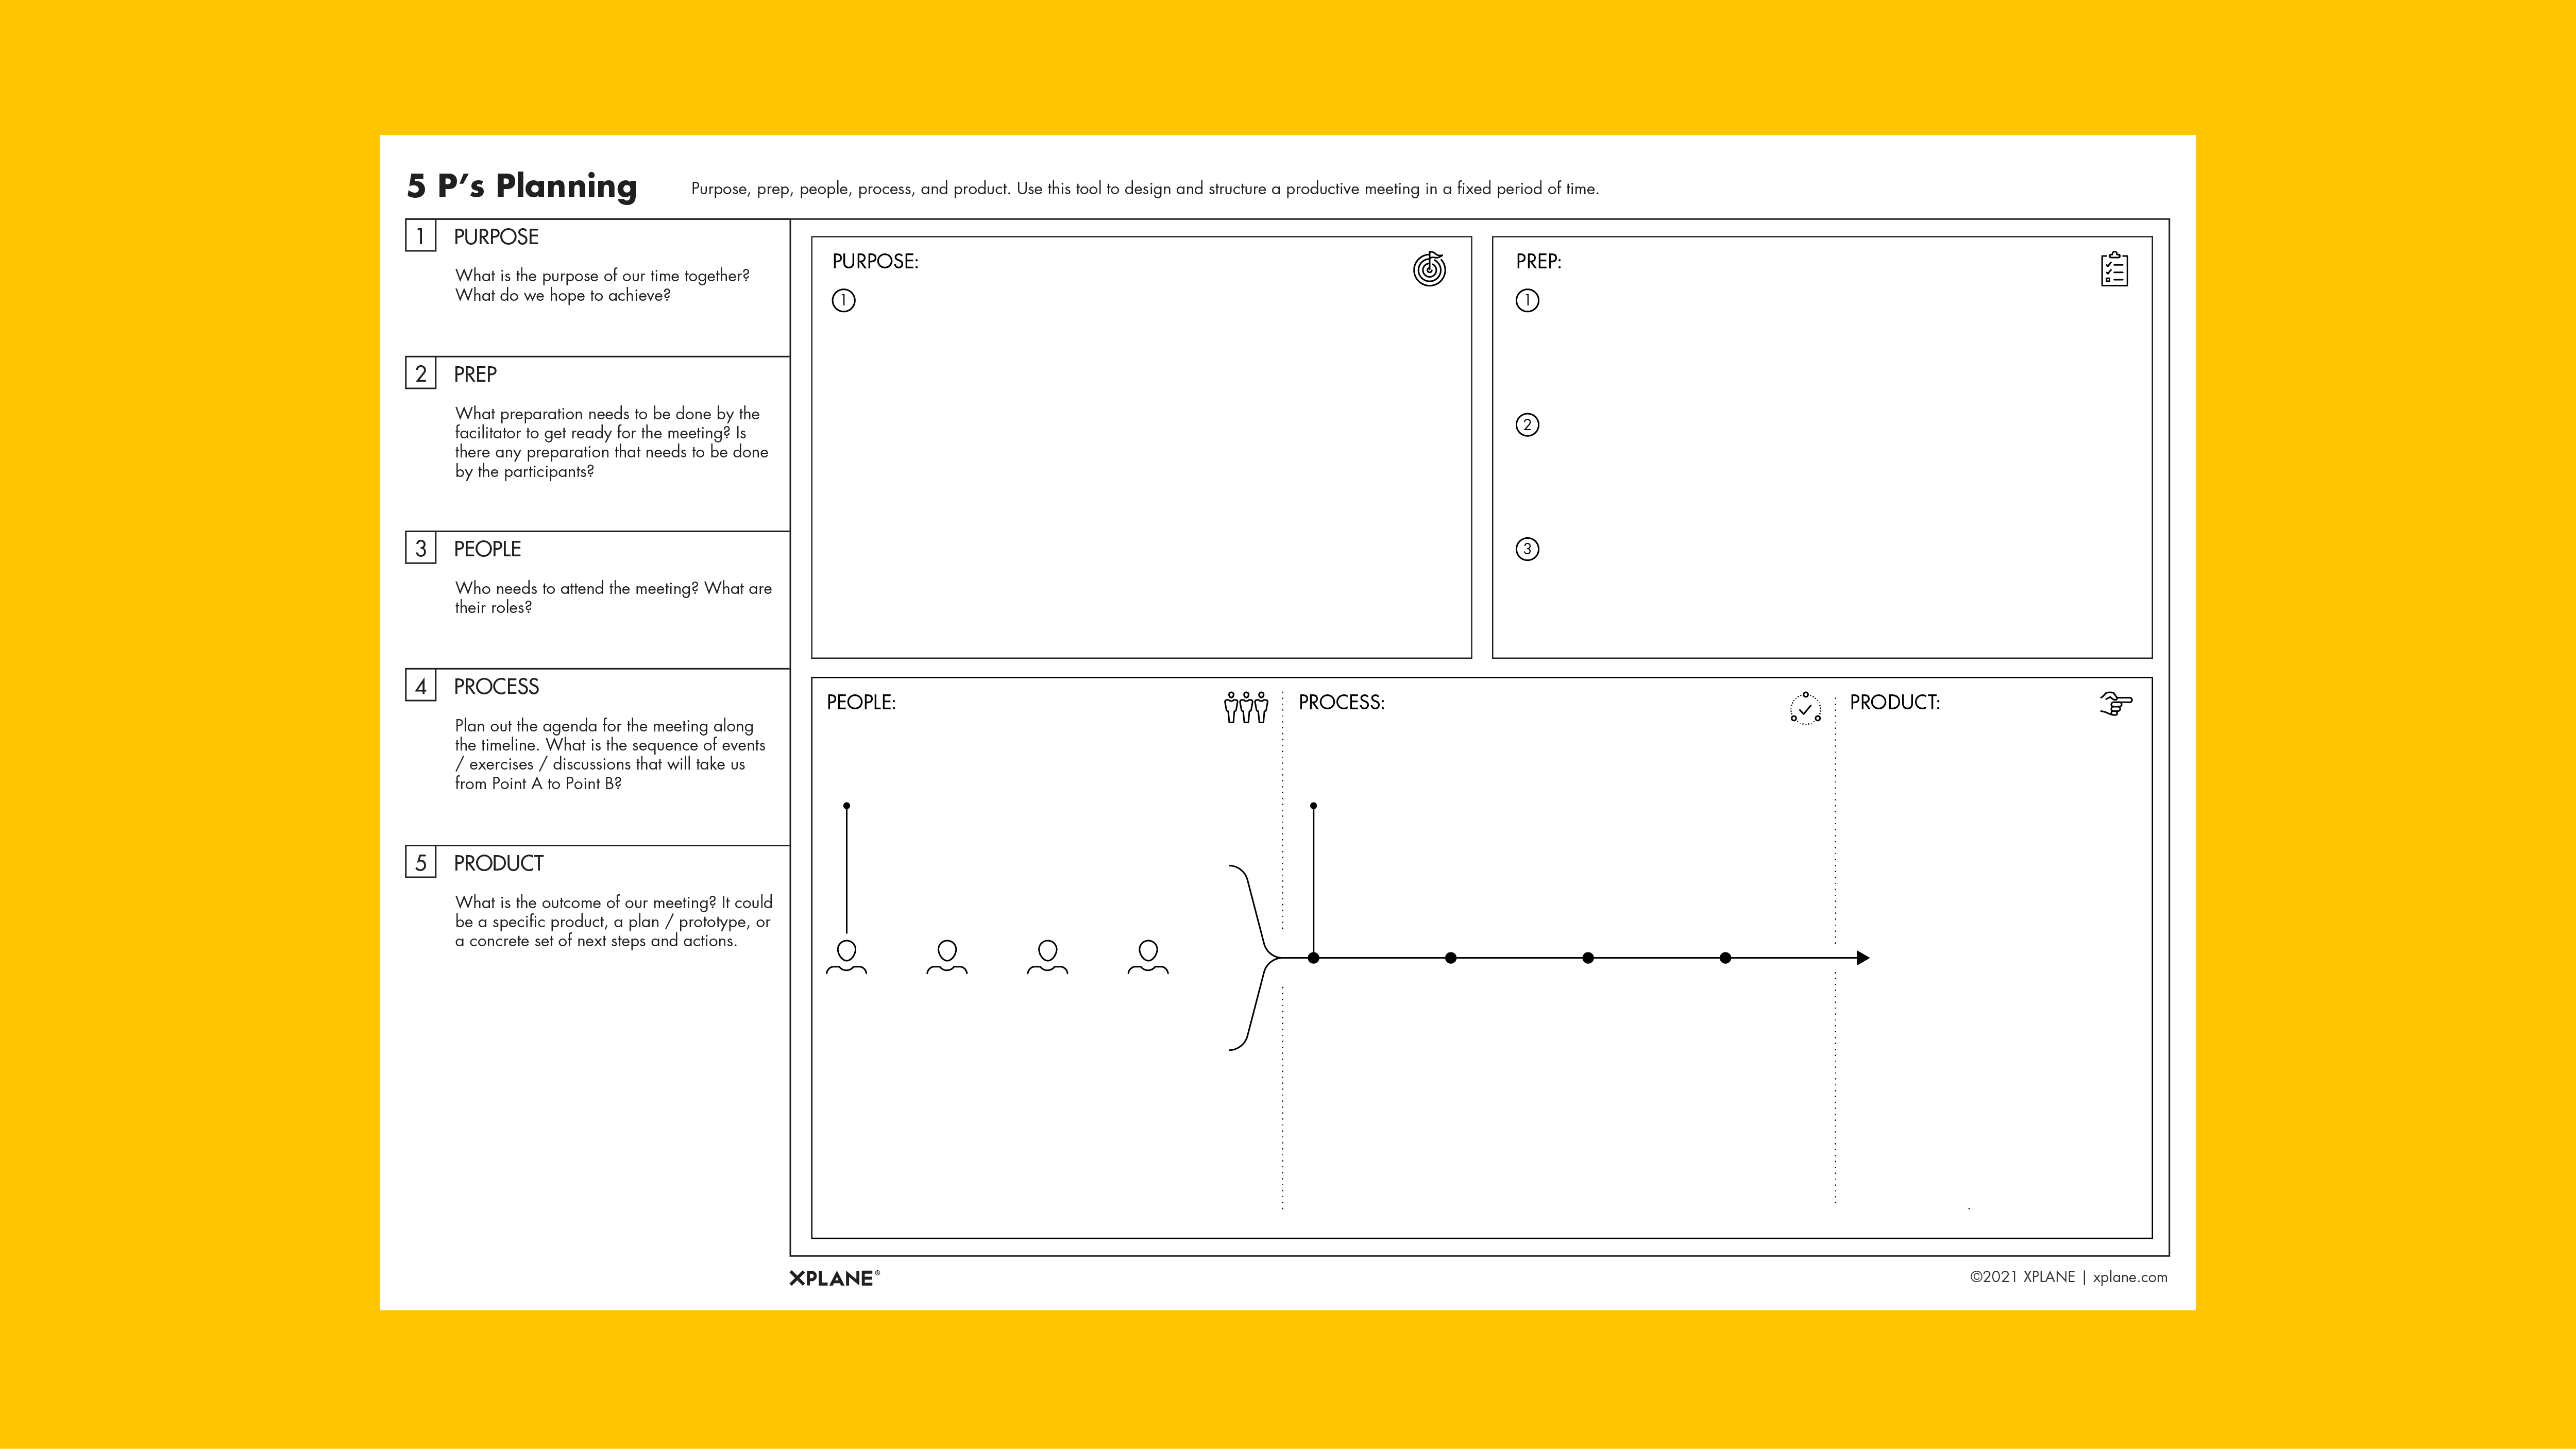 5 P's Planning worksheet against yellow background